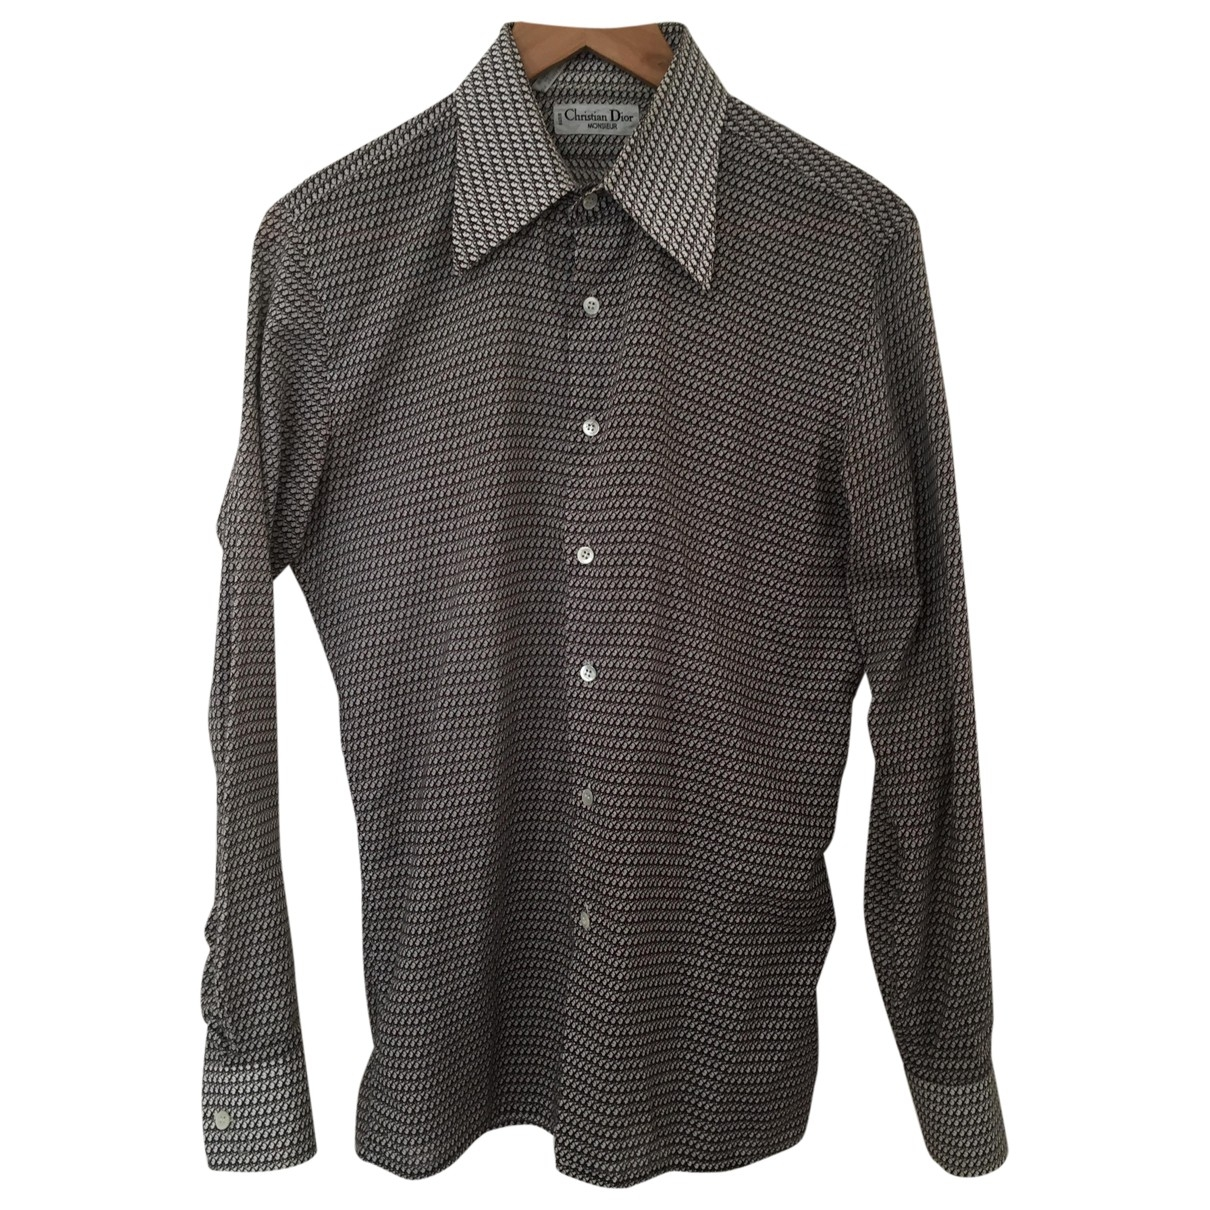 Dior \N Brown Cotton Shirts for Men 37 EU (tour de cou / collar)